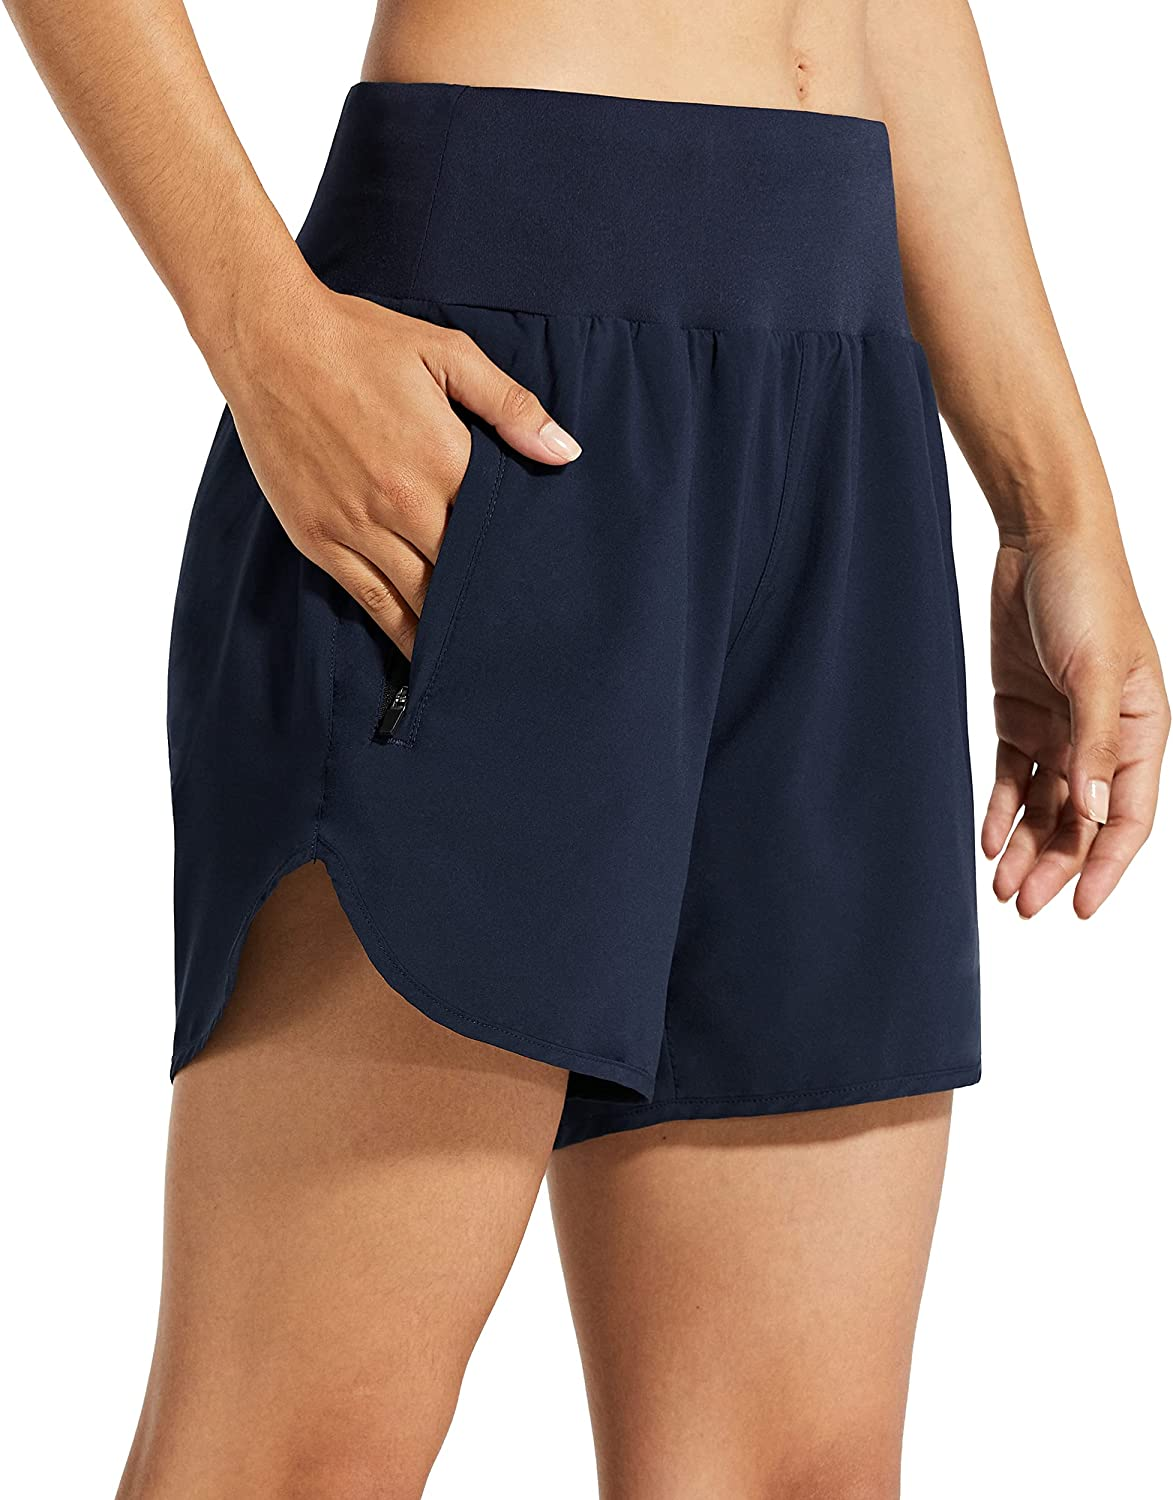 Libin Womens 5 Inches Athletic Running with Shorts D Ranking TOP12 Liner Quick Nashville-Davidson Mall